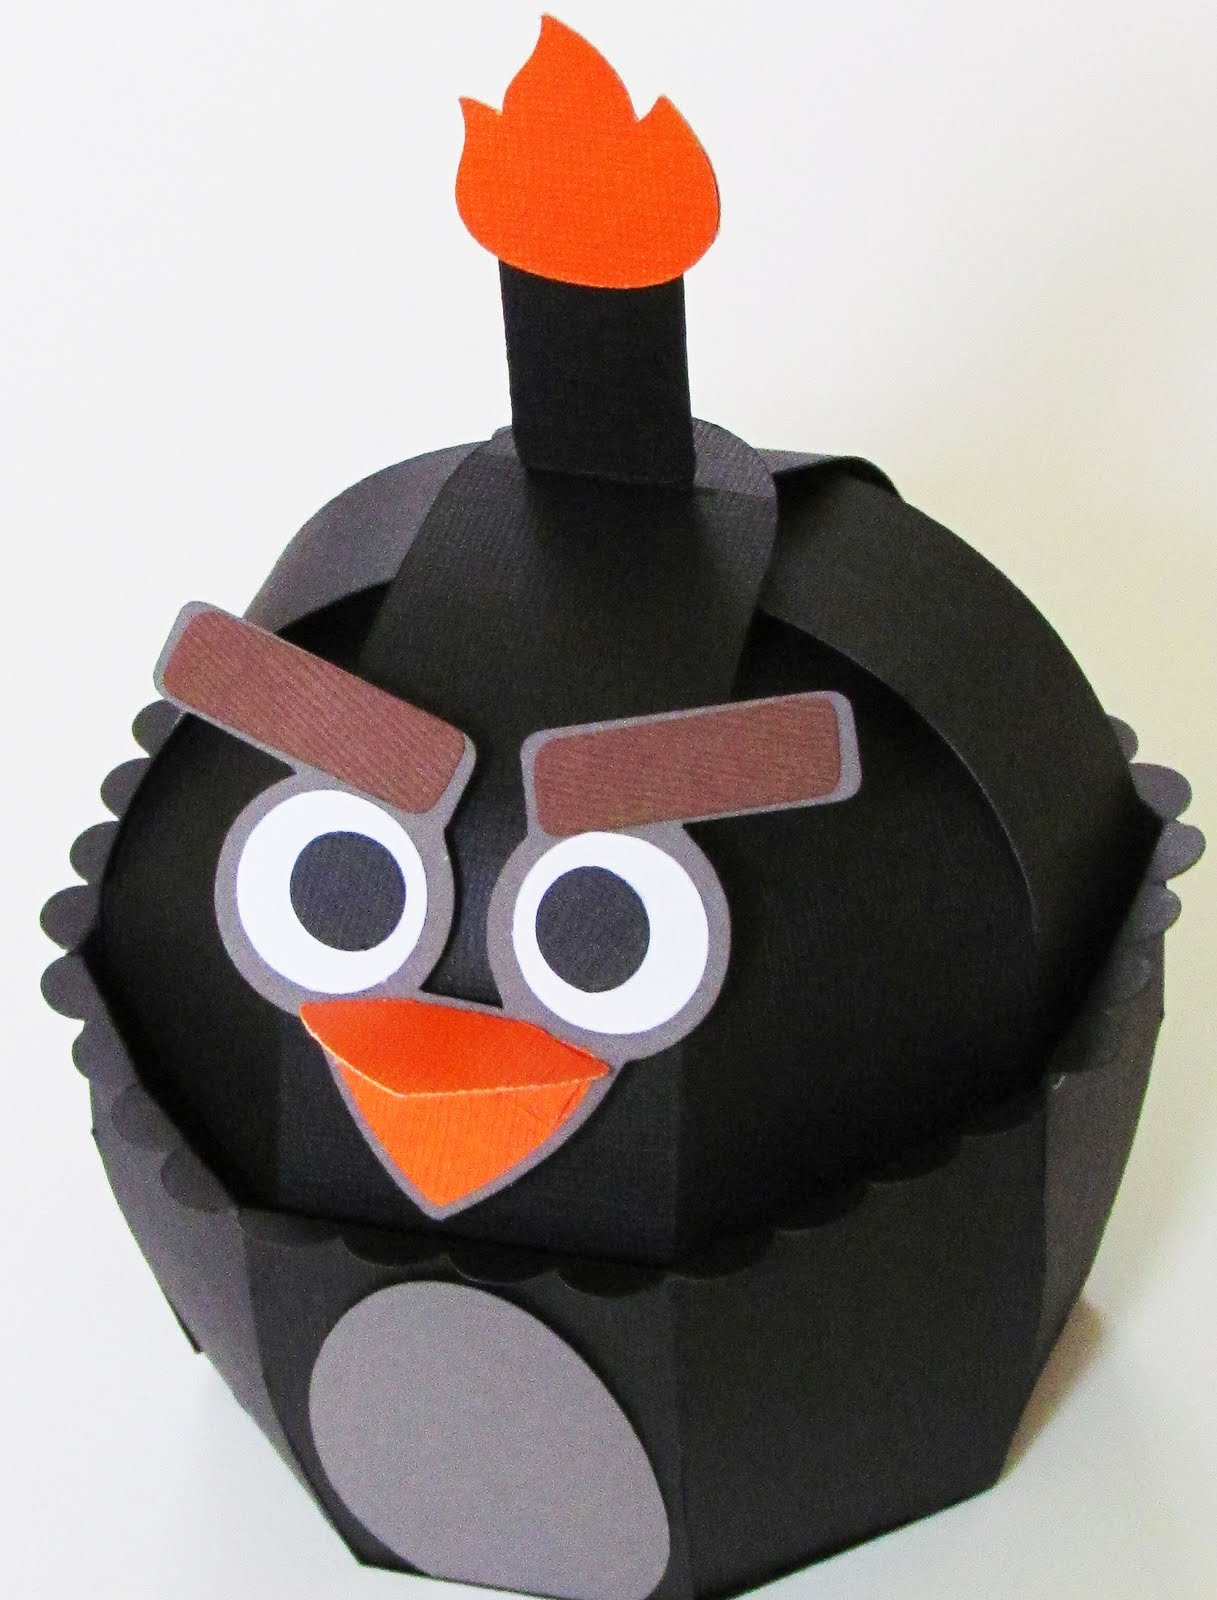 sharon langford designs angry birds using sweet tooth boxes. Black Bedroom Furniture Sets. Home Design Ideas